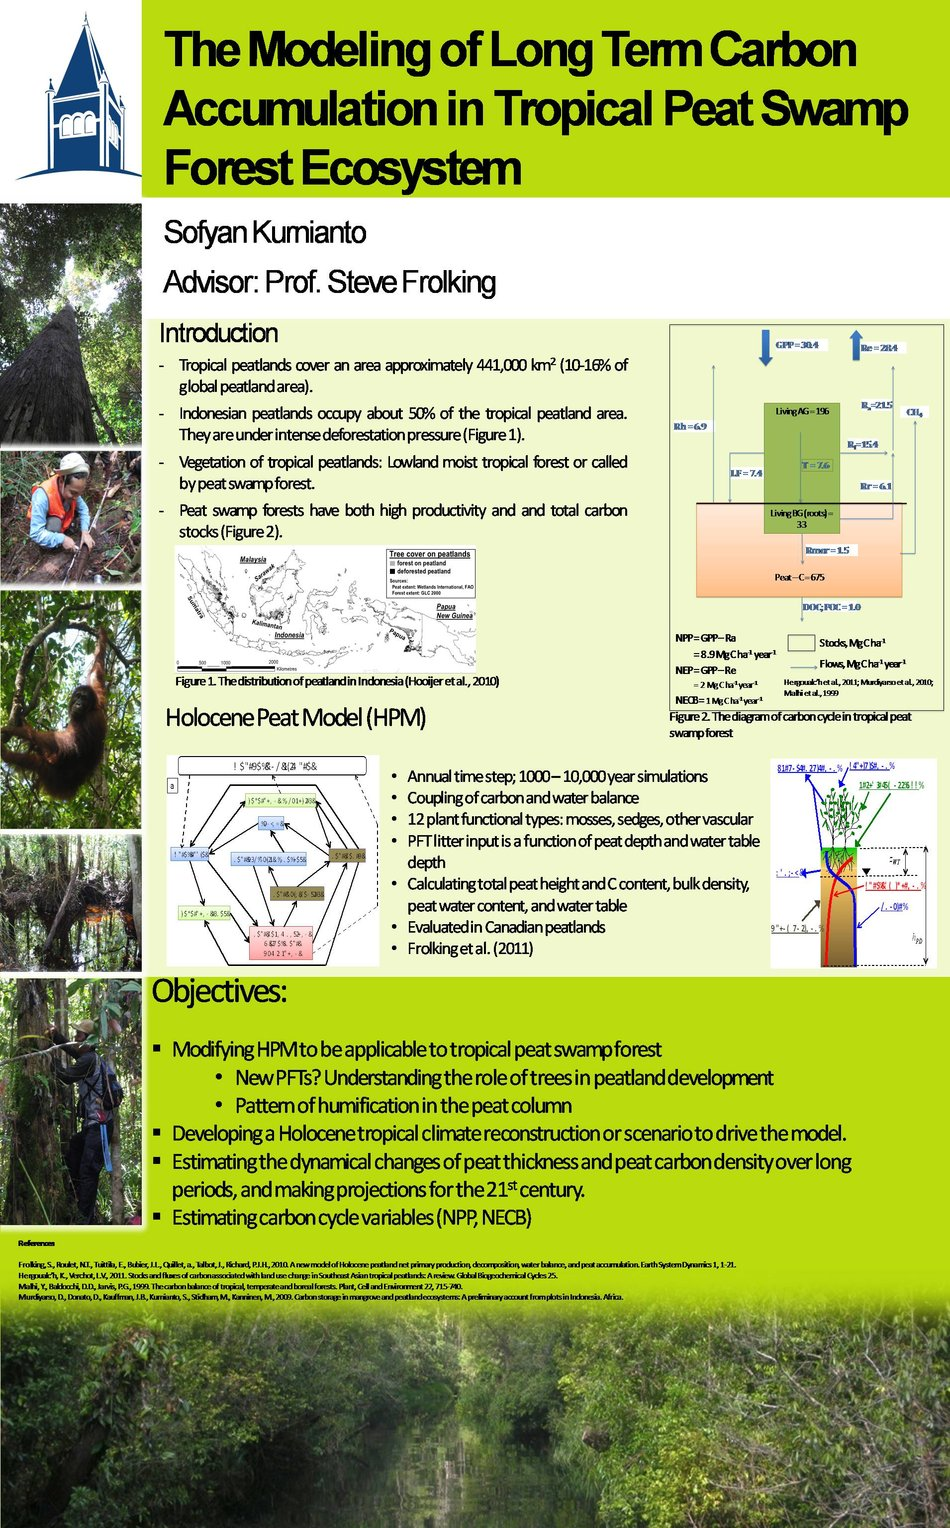 The Modeling Of Long Term Carbon Accumulation In Tropical Peat Swamp Forest Ecosystem   by skurnianto